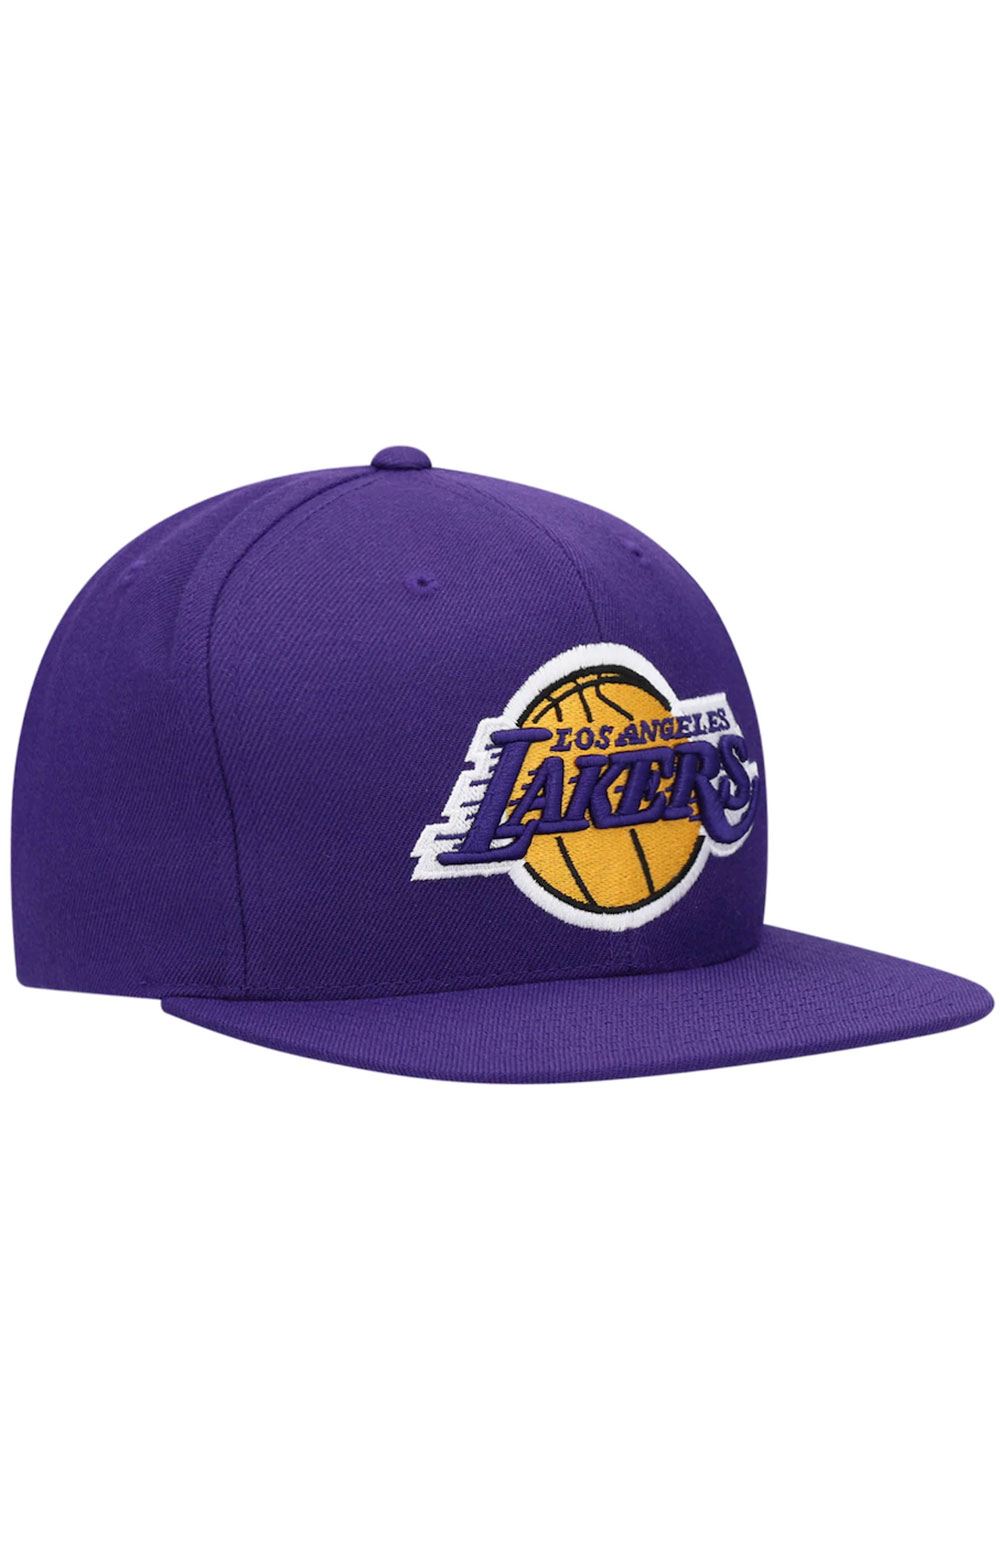 NBA Team Ground Snap-Back Hat - Lakers 3